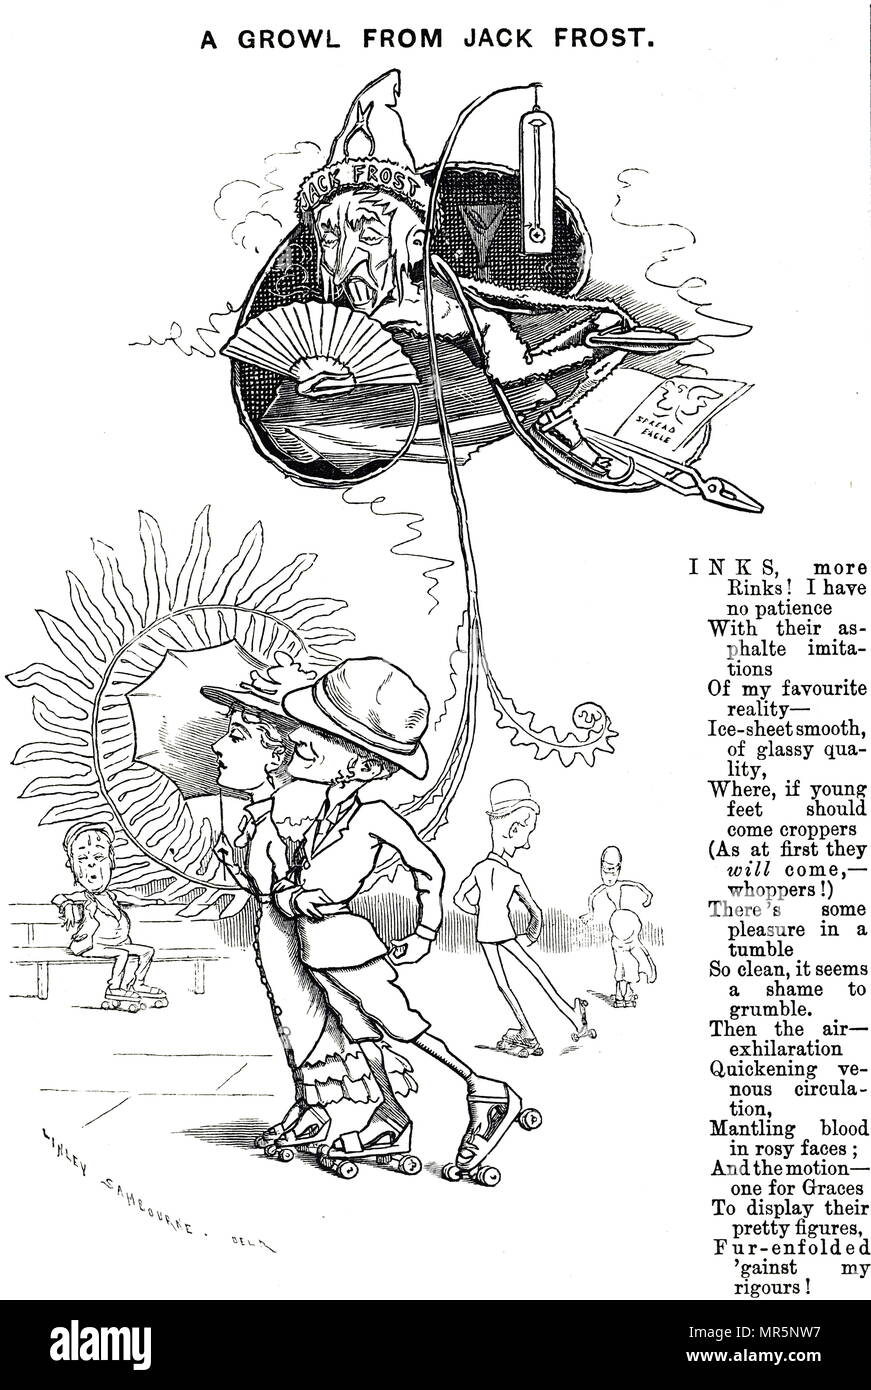 Cartoon promoting roller skates, which means all year round skating is made possible - much to the disgust of Jack Frost. Dated 19th century - Stock Image